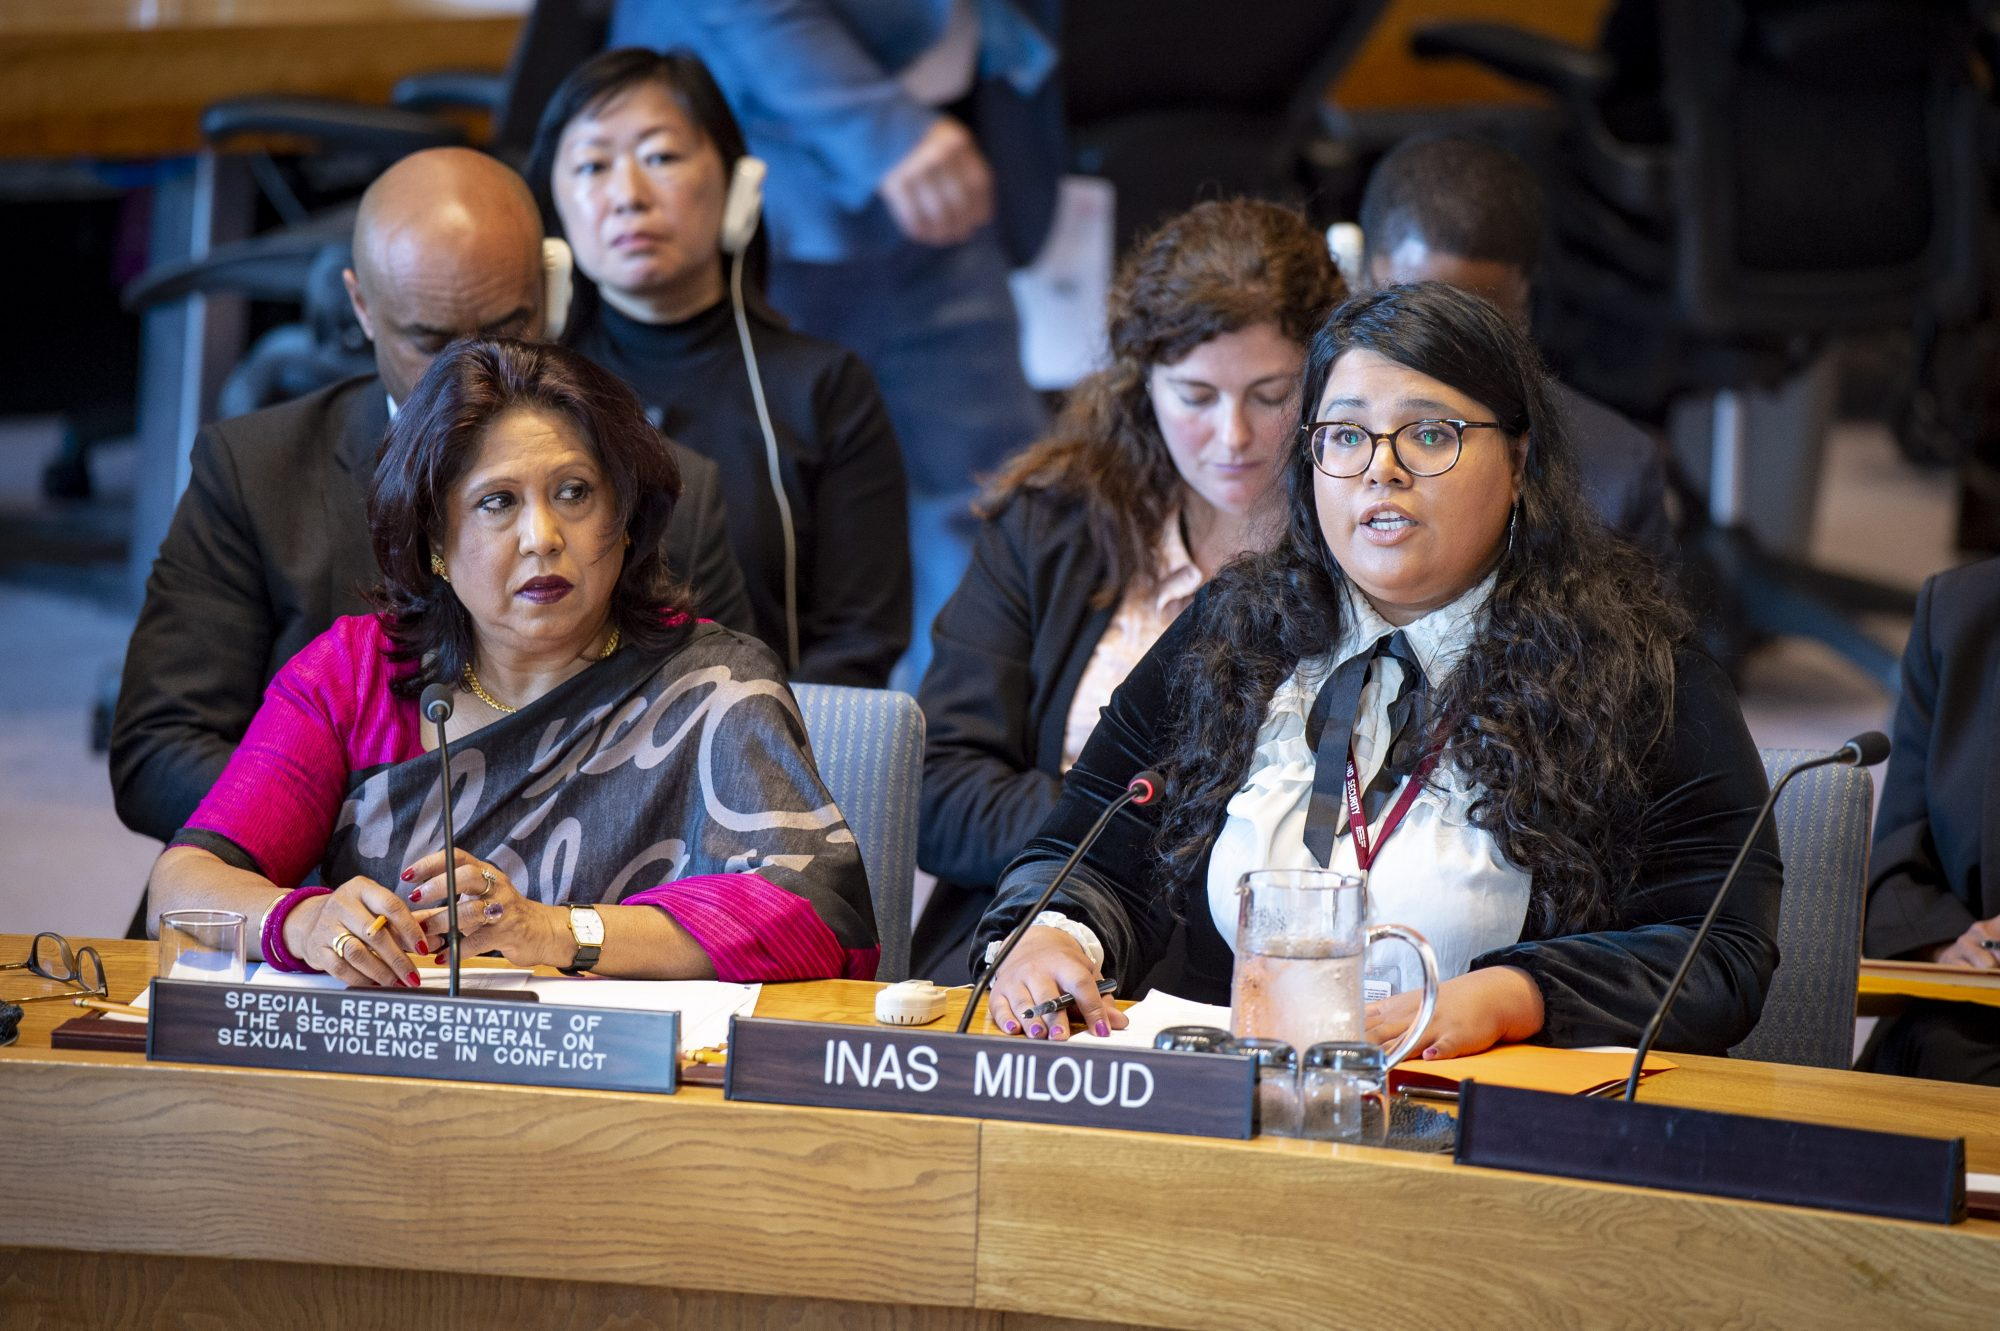 Statement by Ms. Inas Miloud at UN Security Council Open Debate on Sexual Violence in Conflict